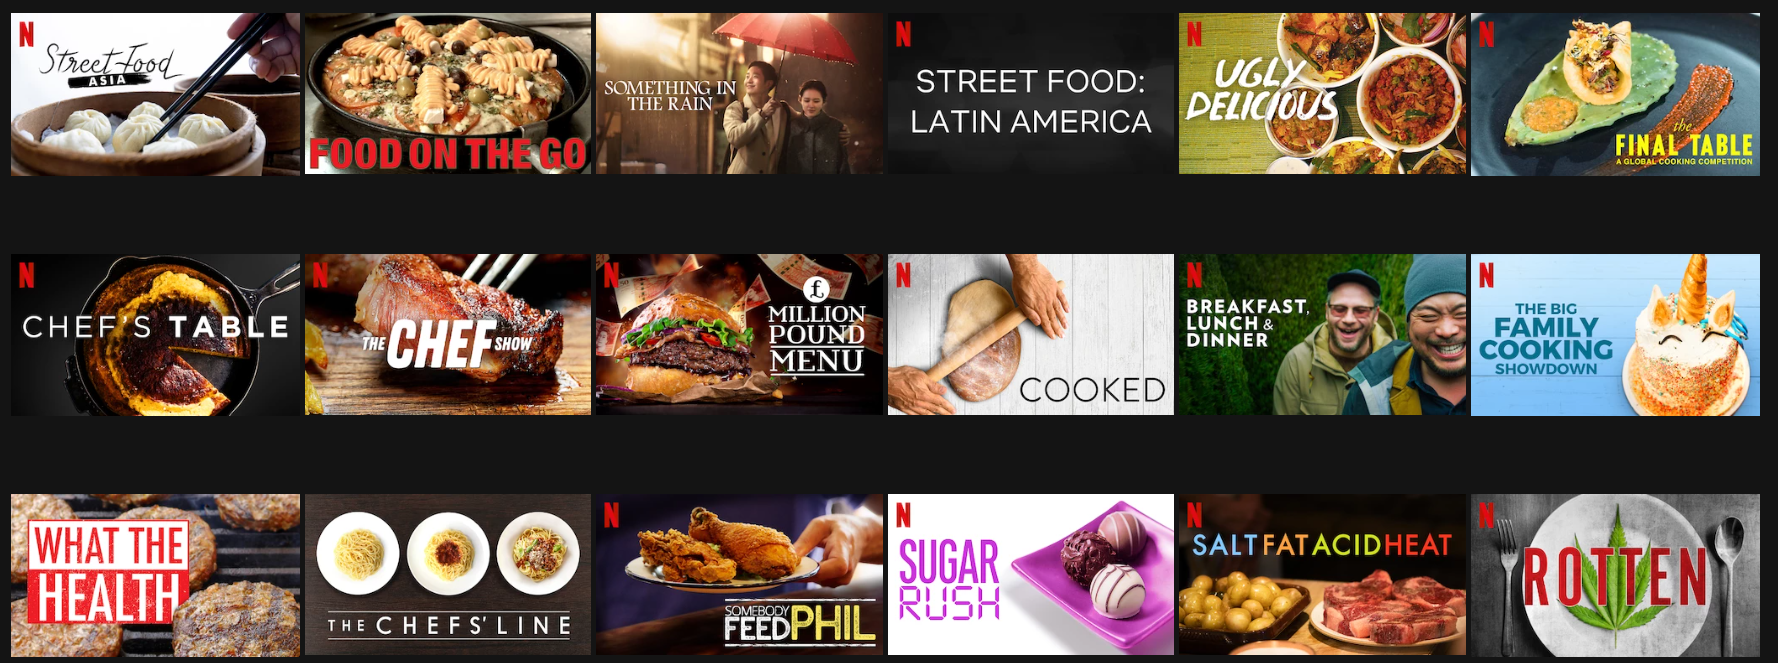 food documentaries and shows on netflix